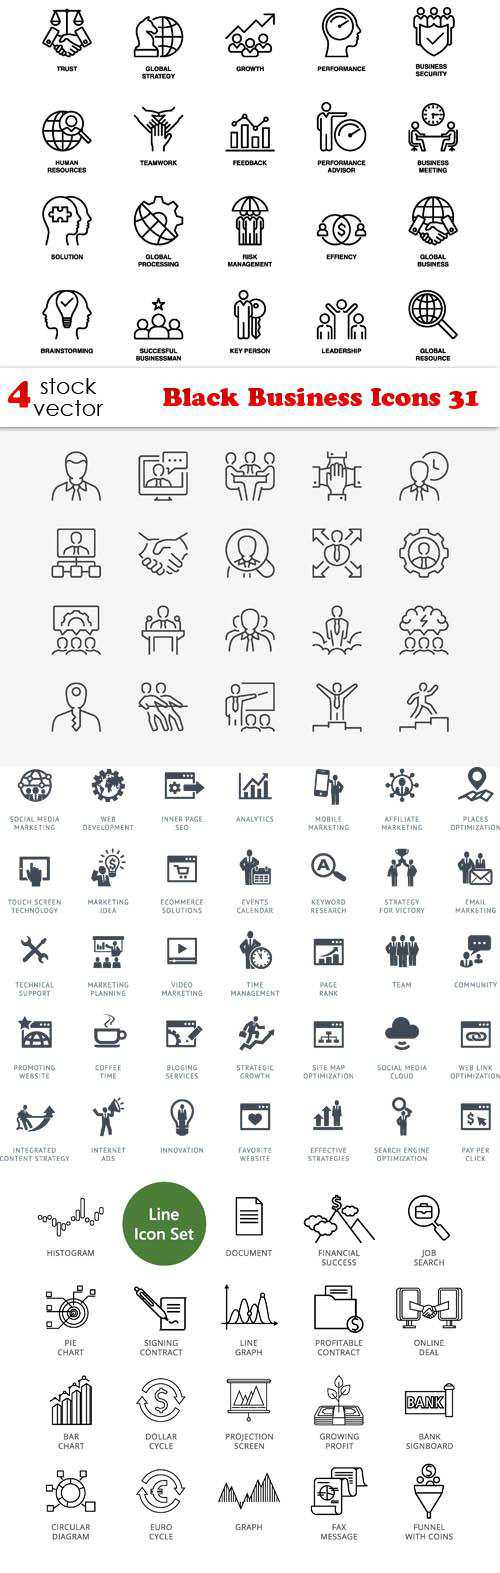 Black Business Icons 31